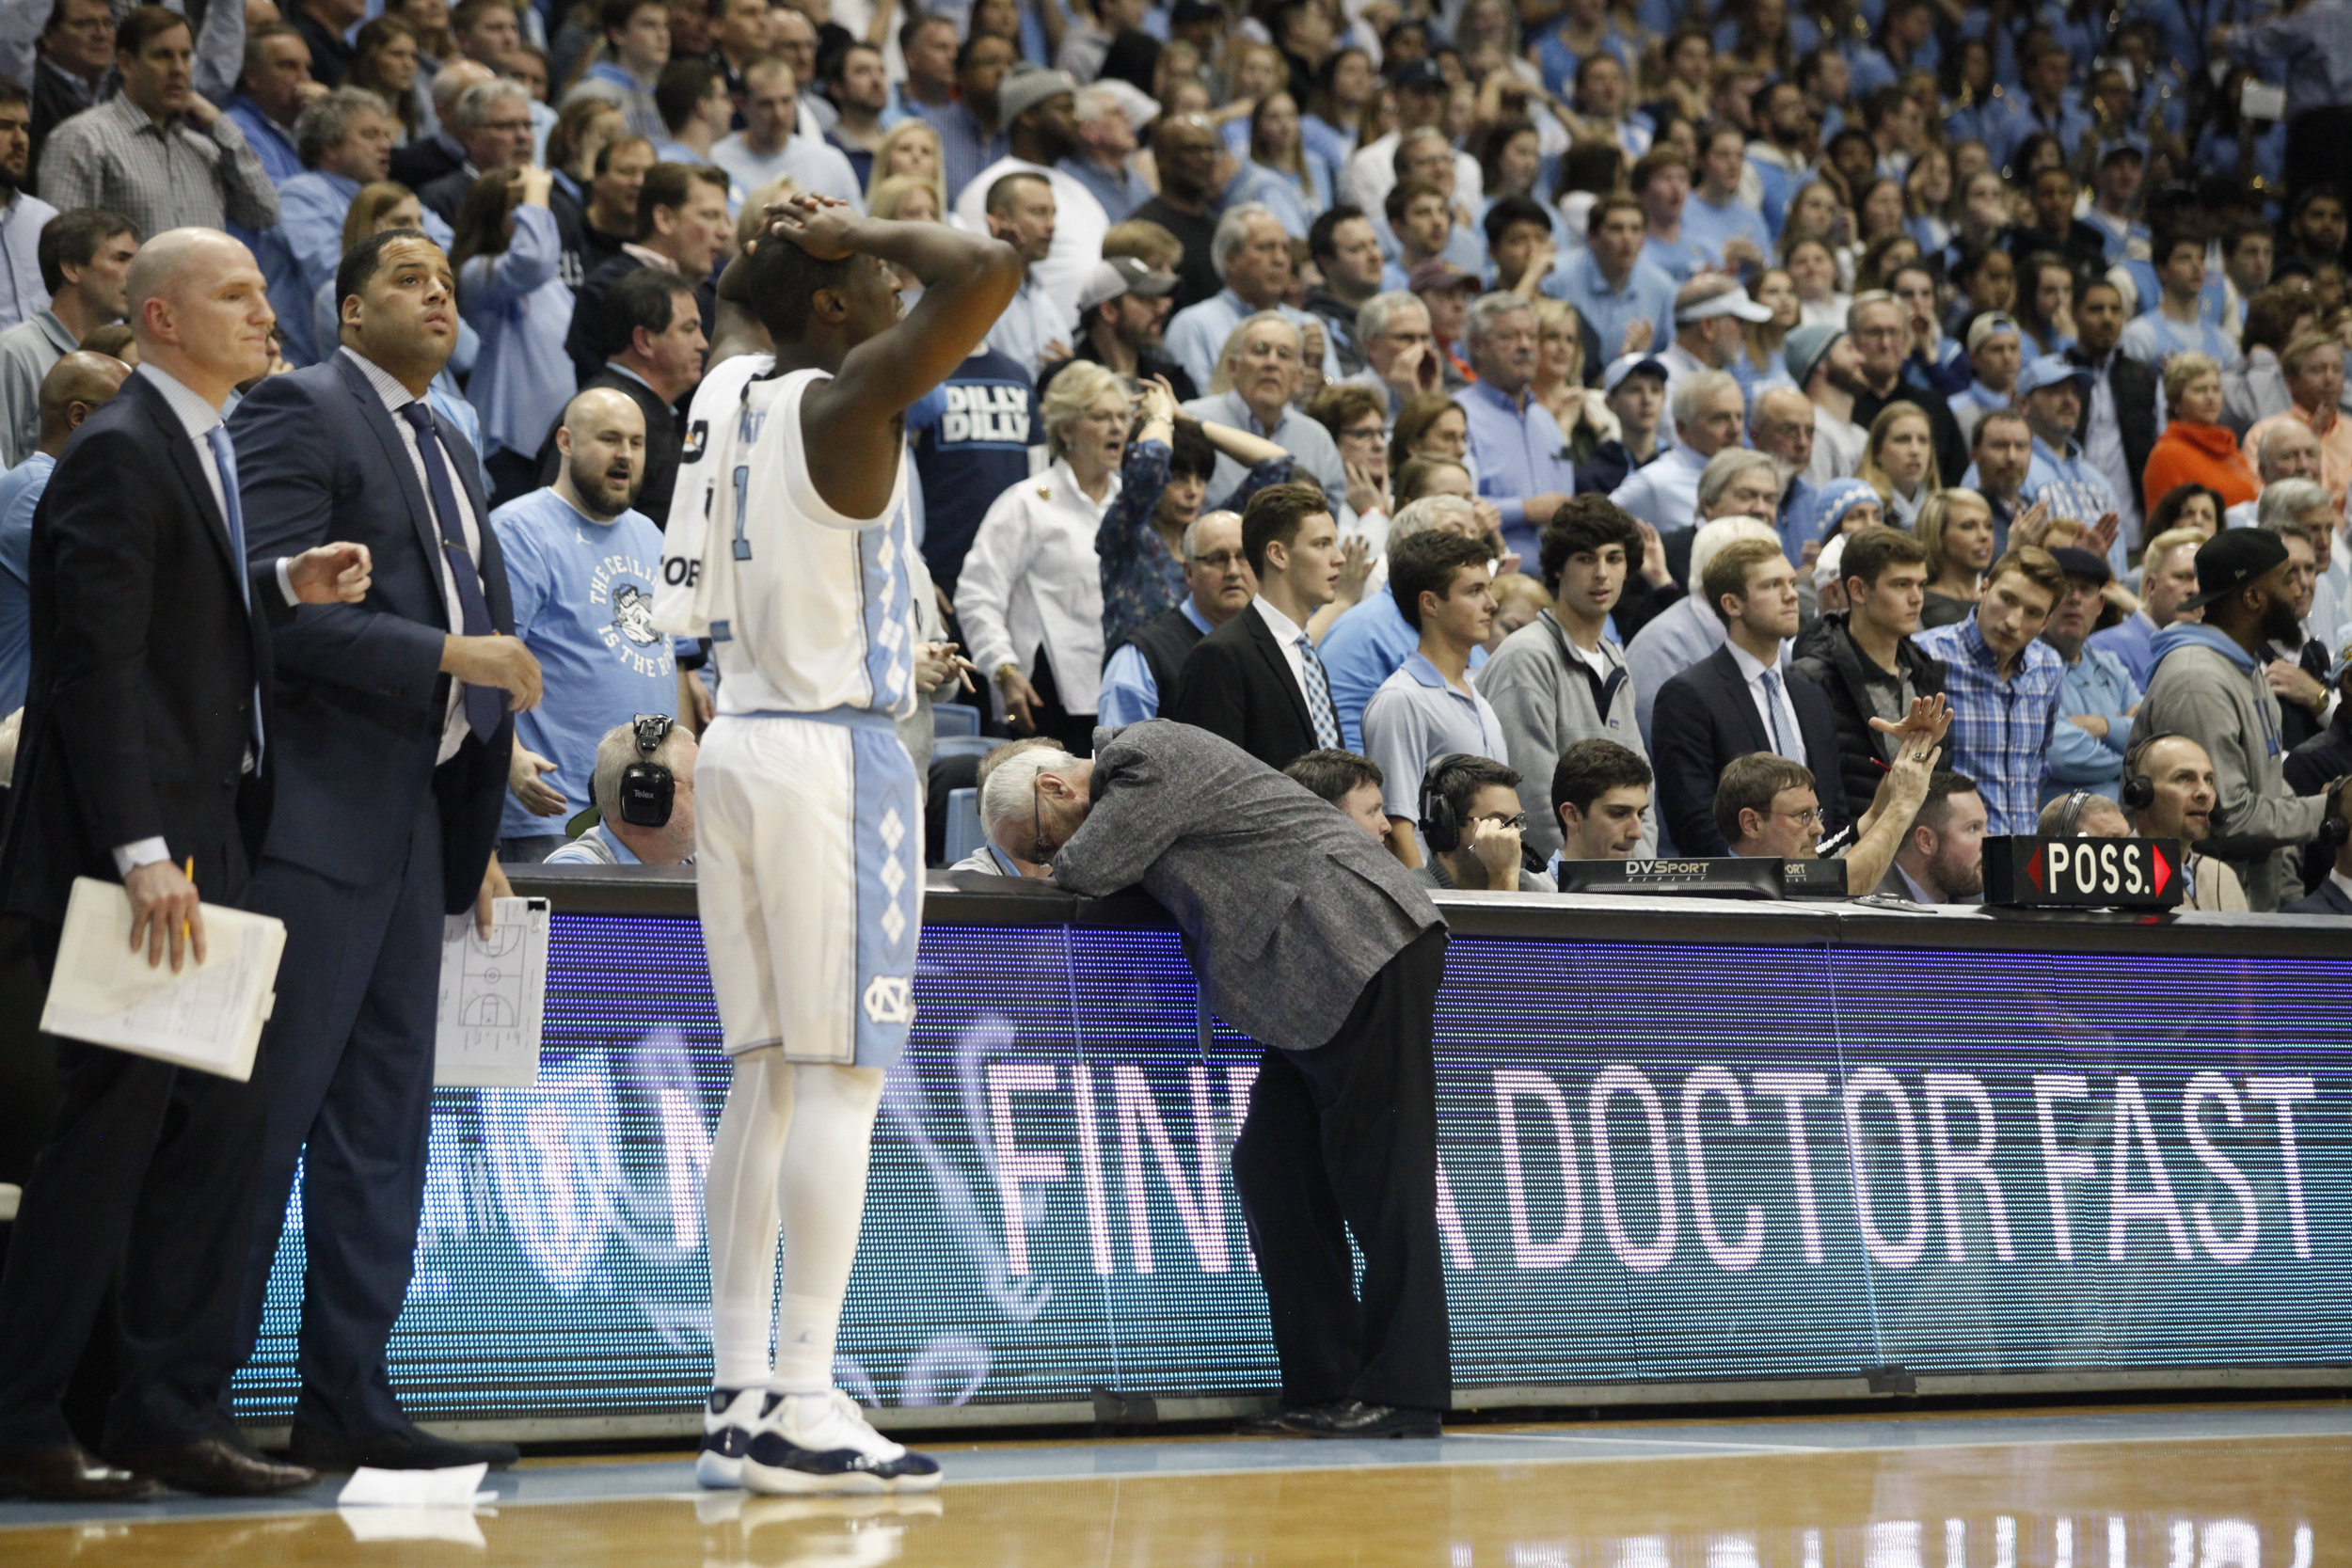 """North Carolina coach Roy Williams leans on a table reading """"Find A Doctor Fast"""" during the game against N.C. State at the Dean Smith Center."""